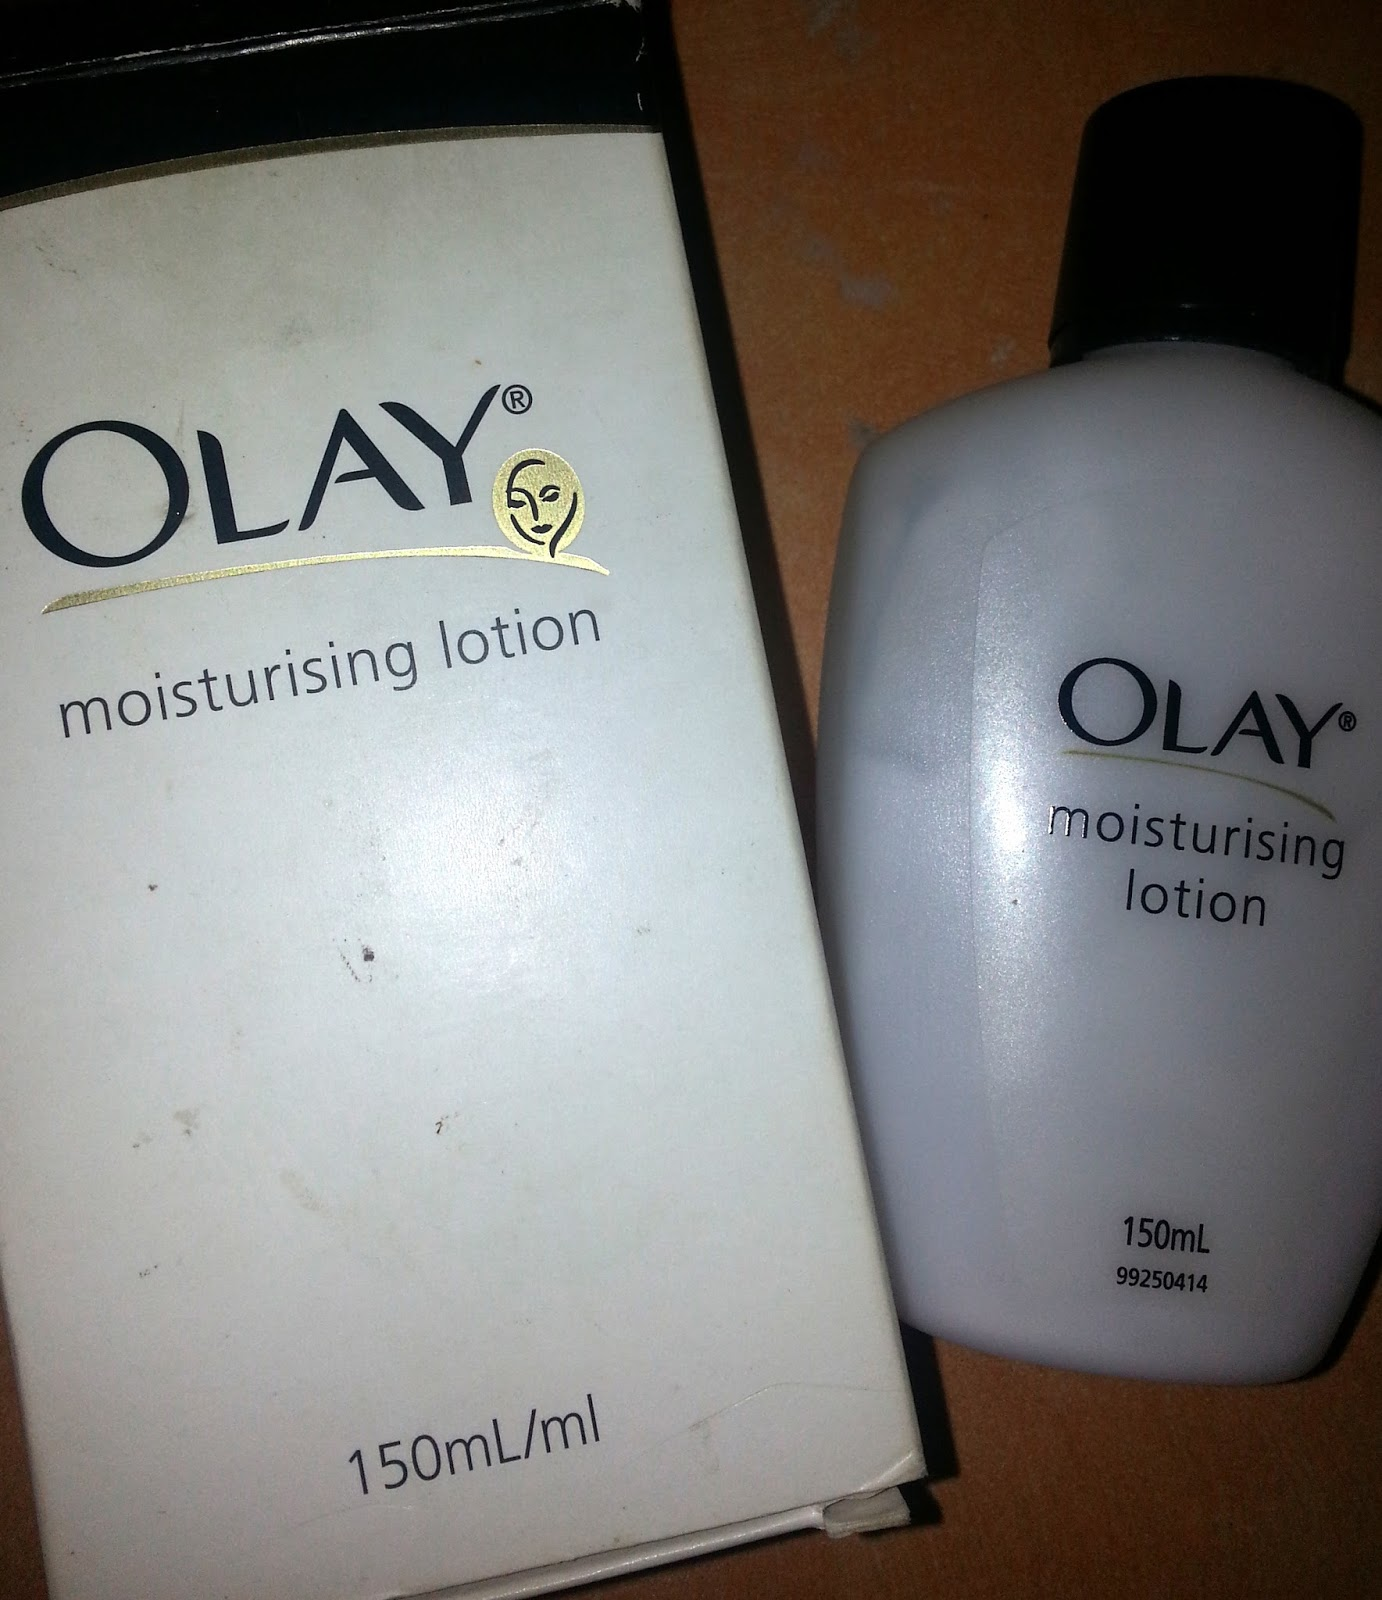 Olay Moisturizing Lotion Review Moisturising Overall If You Are Looking For A No Frills Simple Non Oily Use During The Day Under Makeup This Is Hg Product